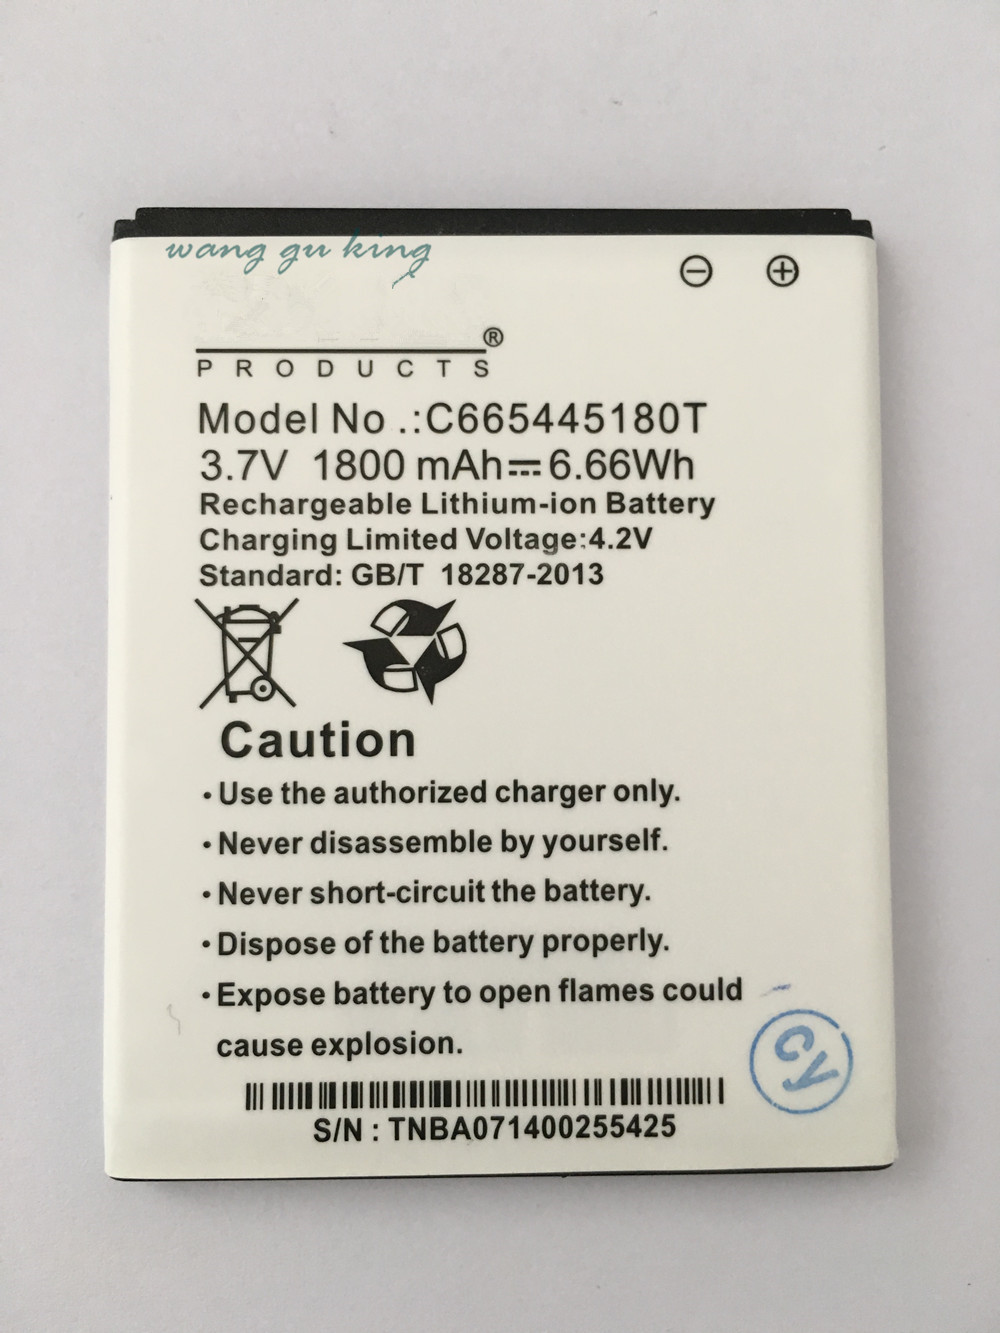 VBNM <font><b>3.7V</b></font> <font><b>1800</b></font> <font><b>mAh</b></font> Replacement C665445180T Battery For BLU NEO 4.5 D330L + Baterij Batterie Cell Phone Batteries image